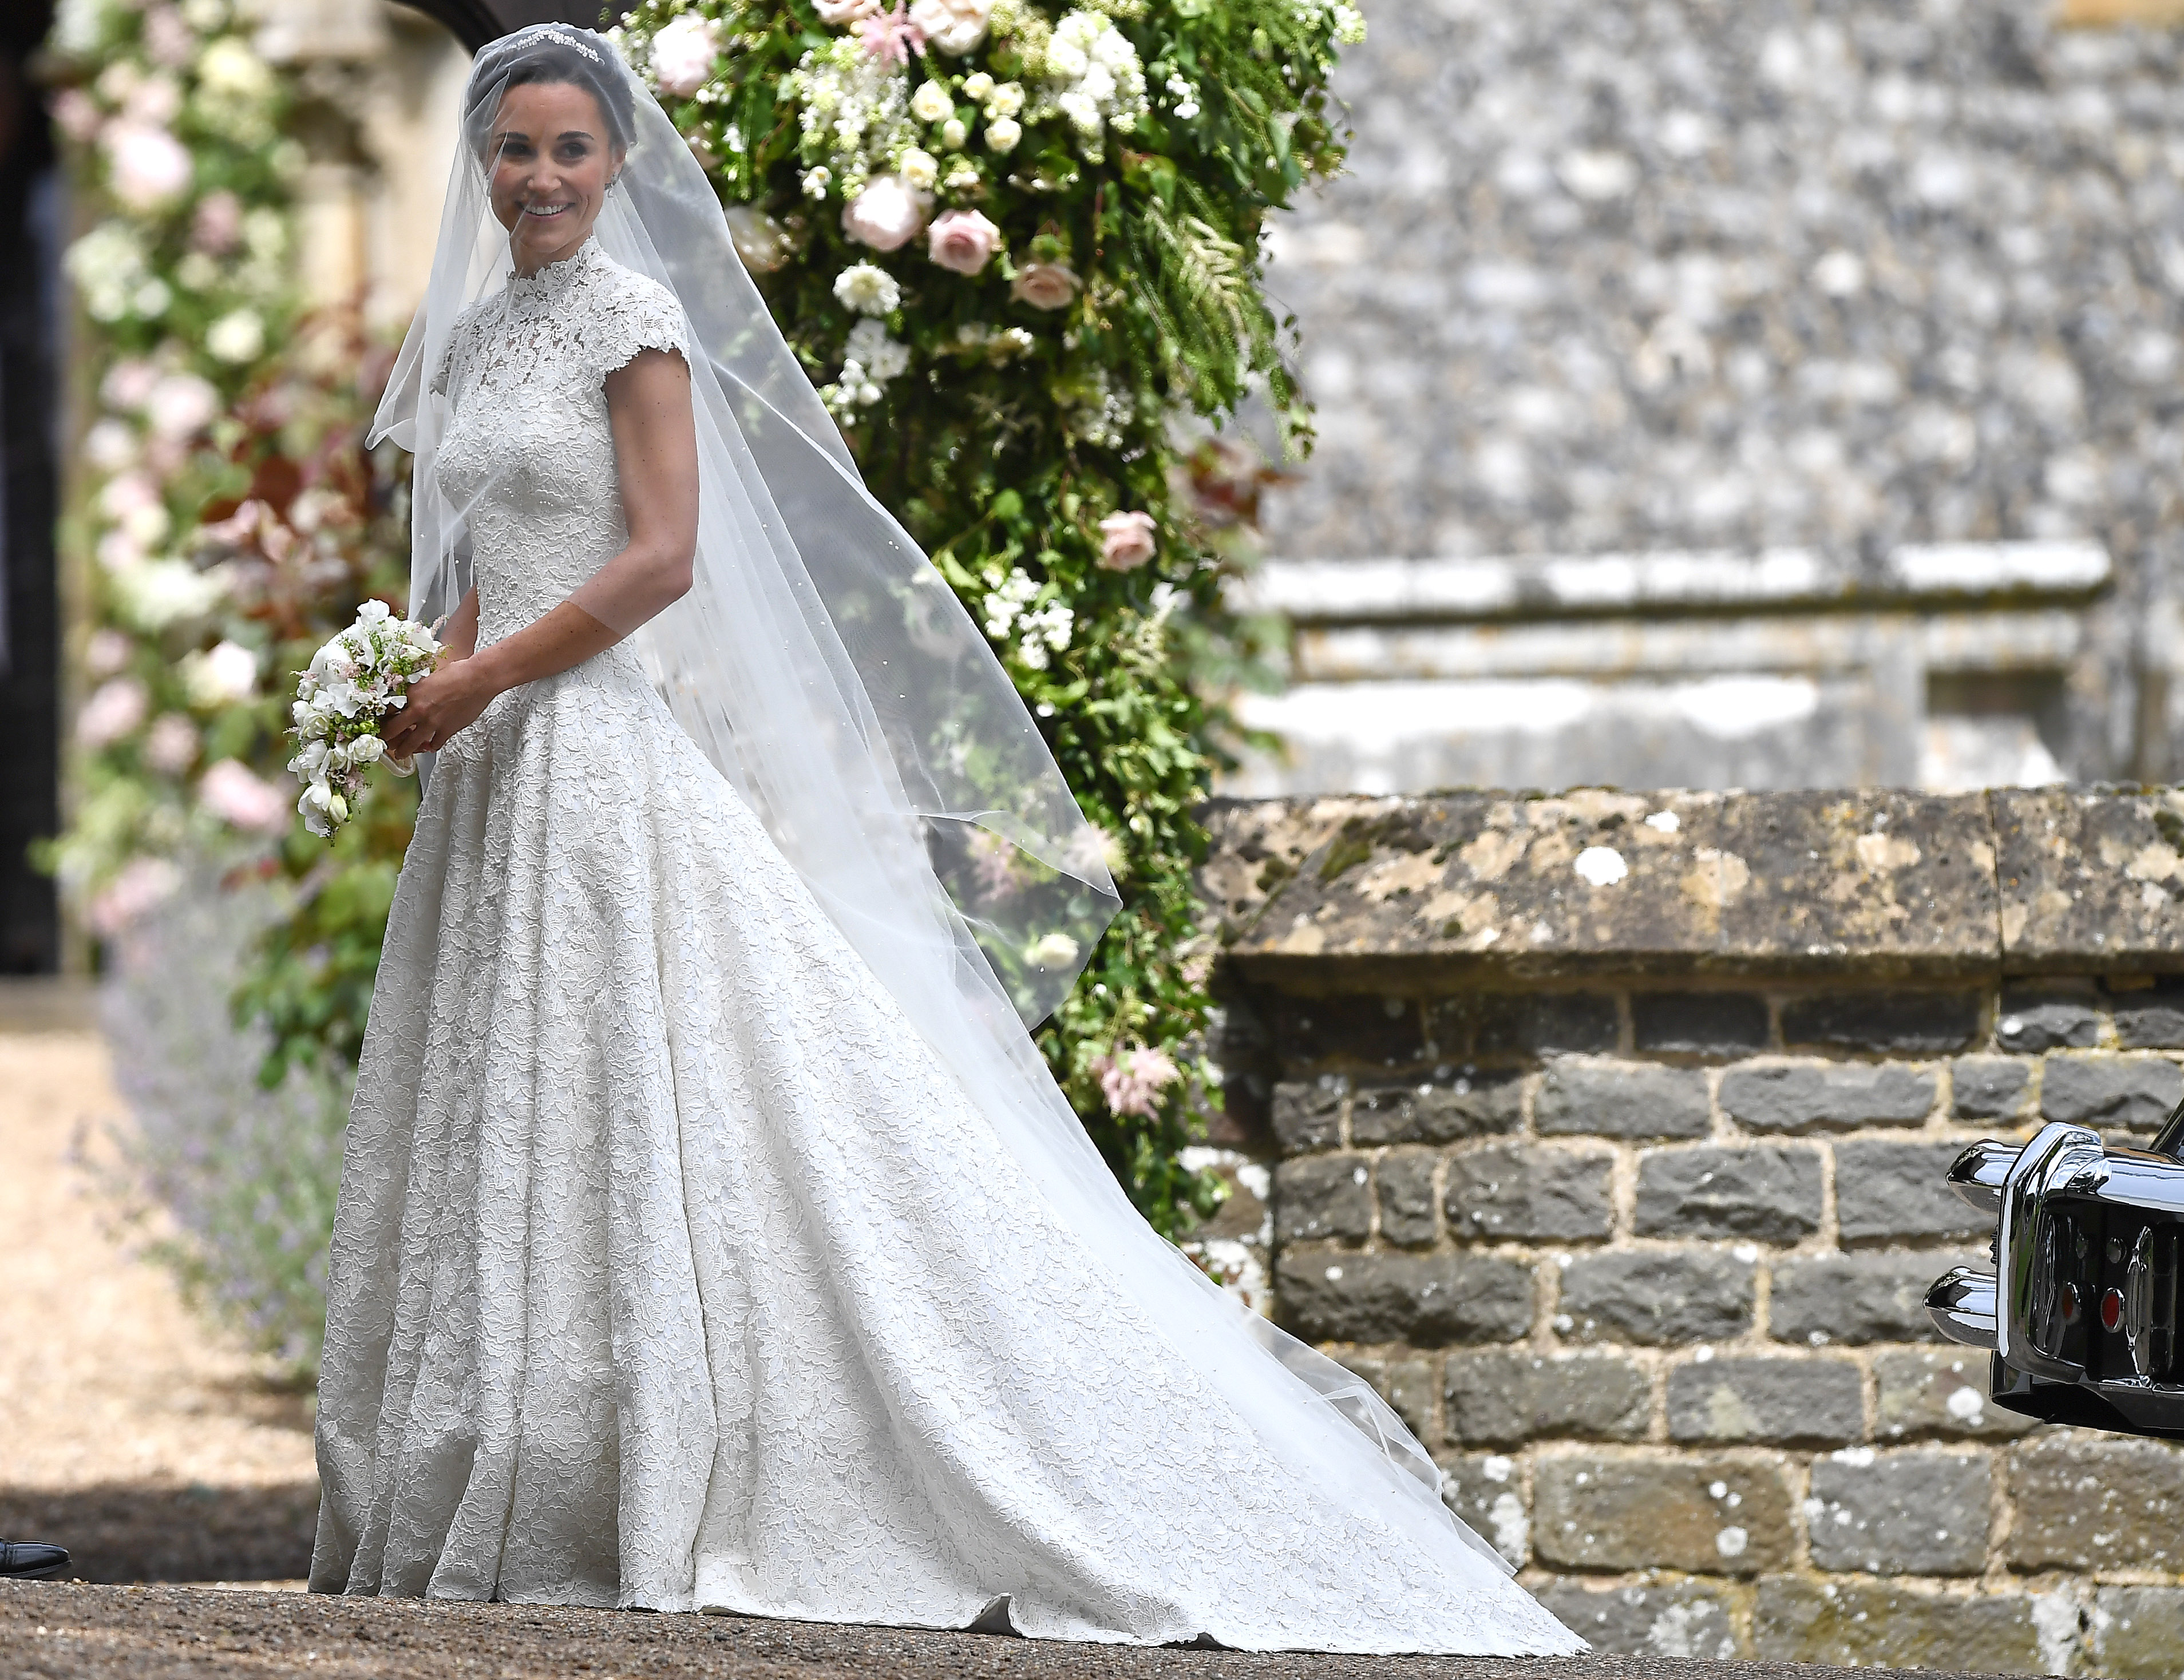 Everything We Know About Pippa Middletons Wedding Everything We Know About Pippa Middletons Wedding new images